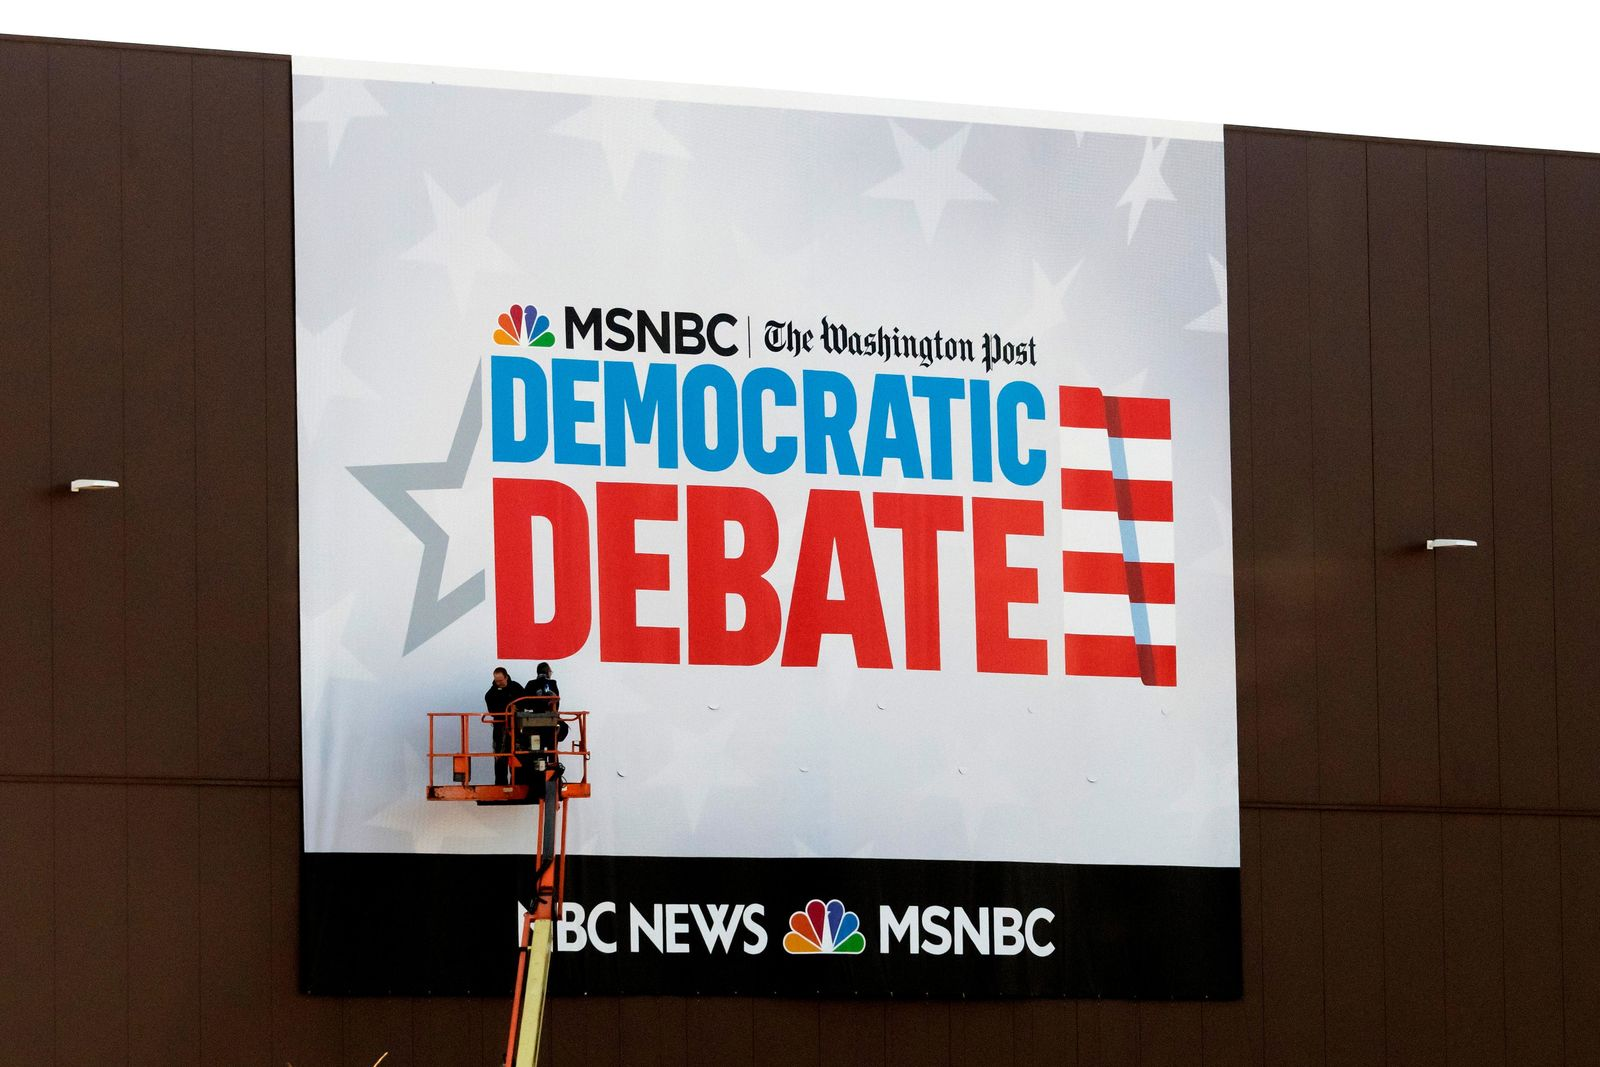 In this Tuesday, Nov. 19, 2019 photo, preparations for the Democratic presidential primary debate are underway before Wednesday's debate in Atlanta. (AP Photo/John Amis)